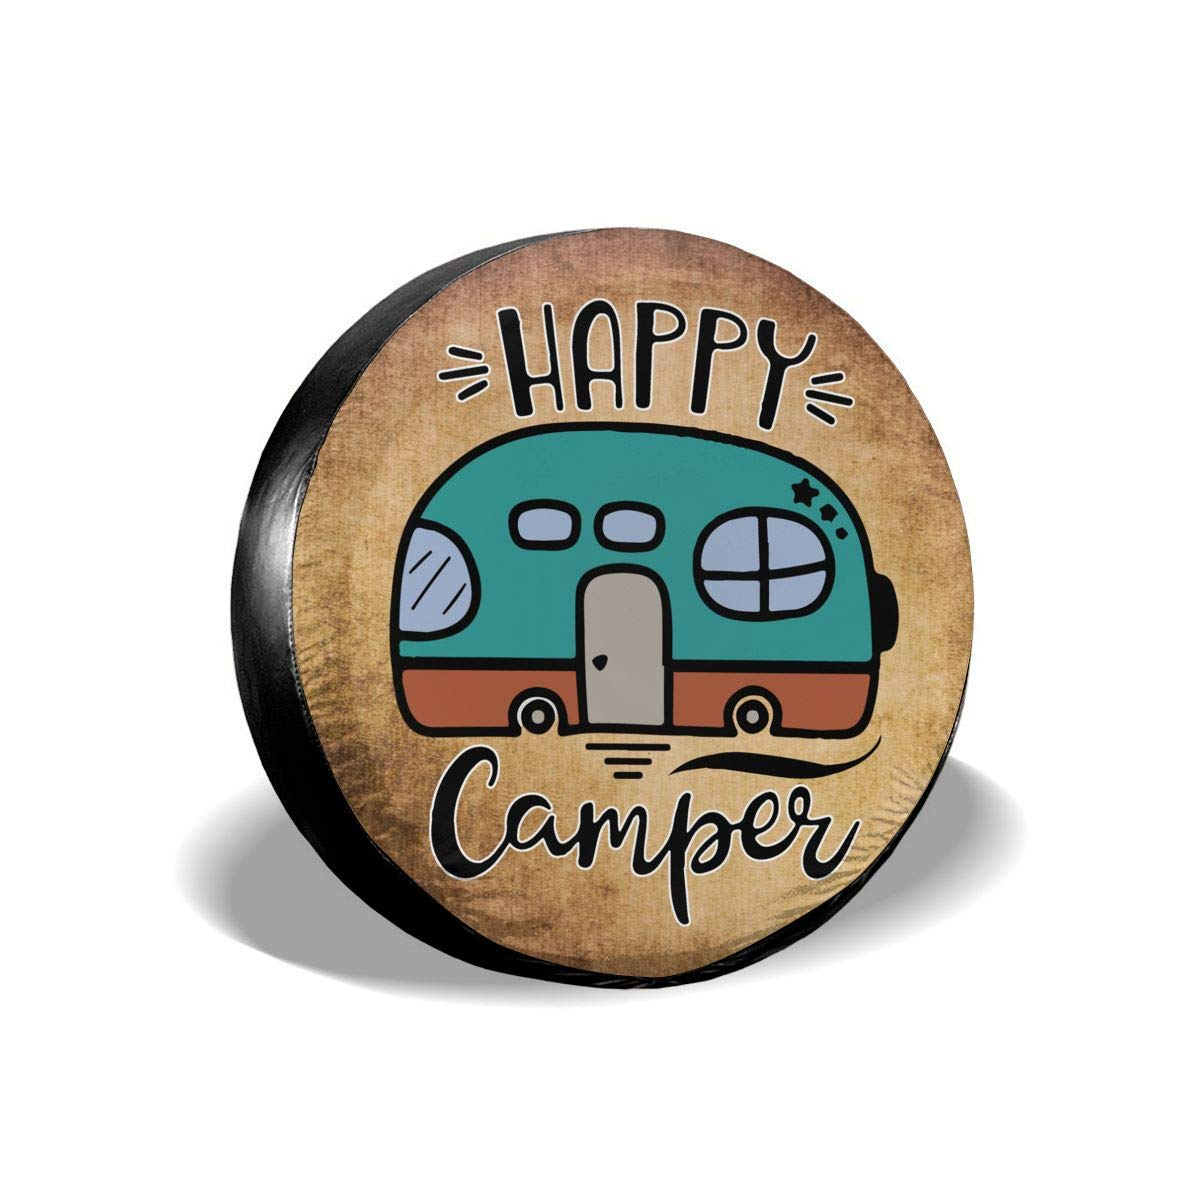 RV Happy Camping Buffalo Plaid Spare Wheel Tire Cover Waterproof Dust-Proof Fit for Trailer SUV and Many Vehicle 14 15 16 17